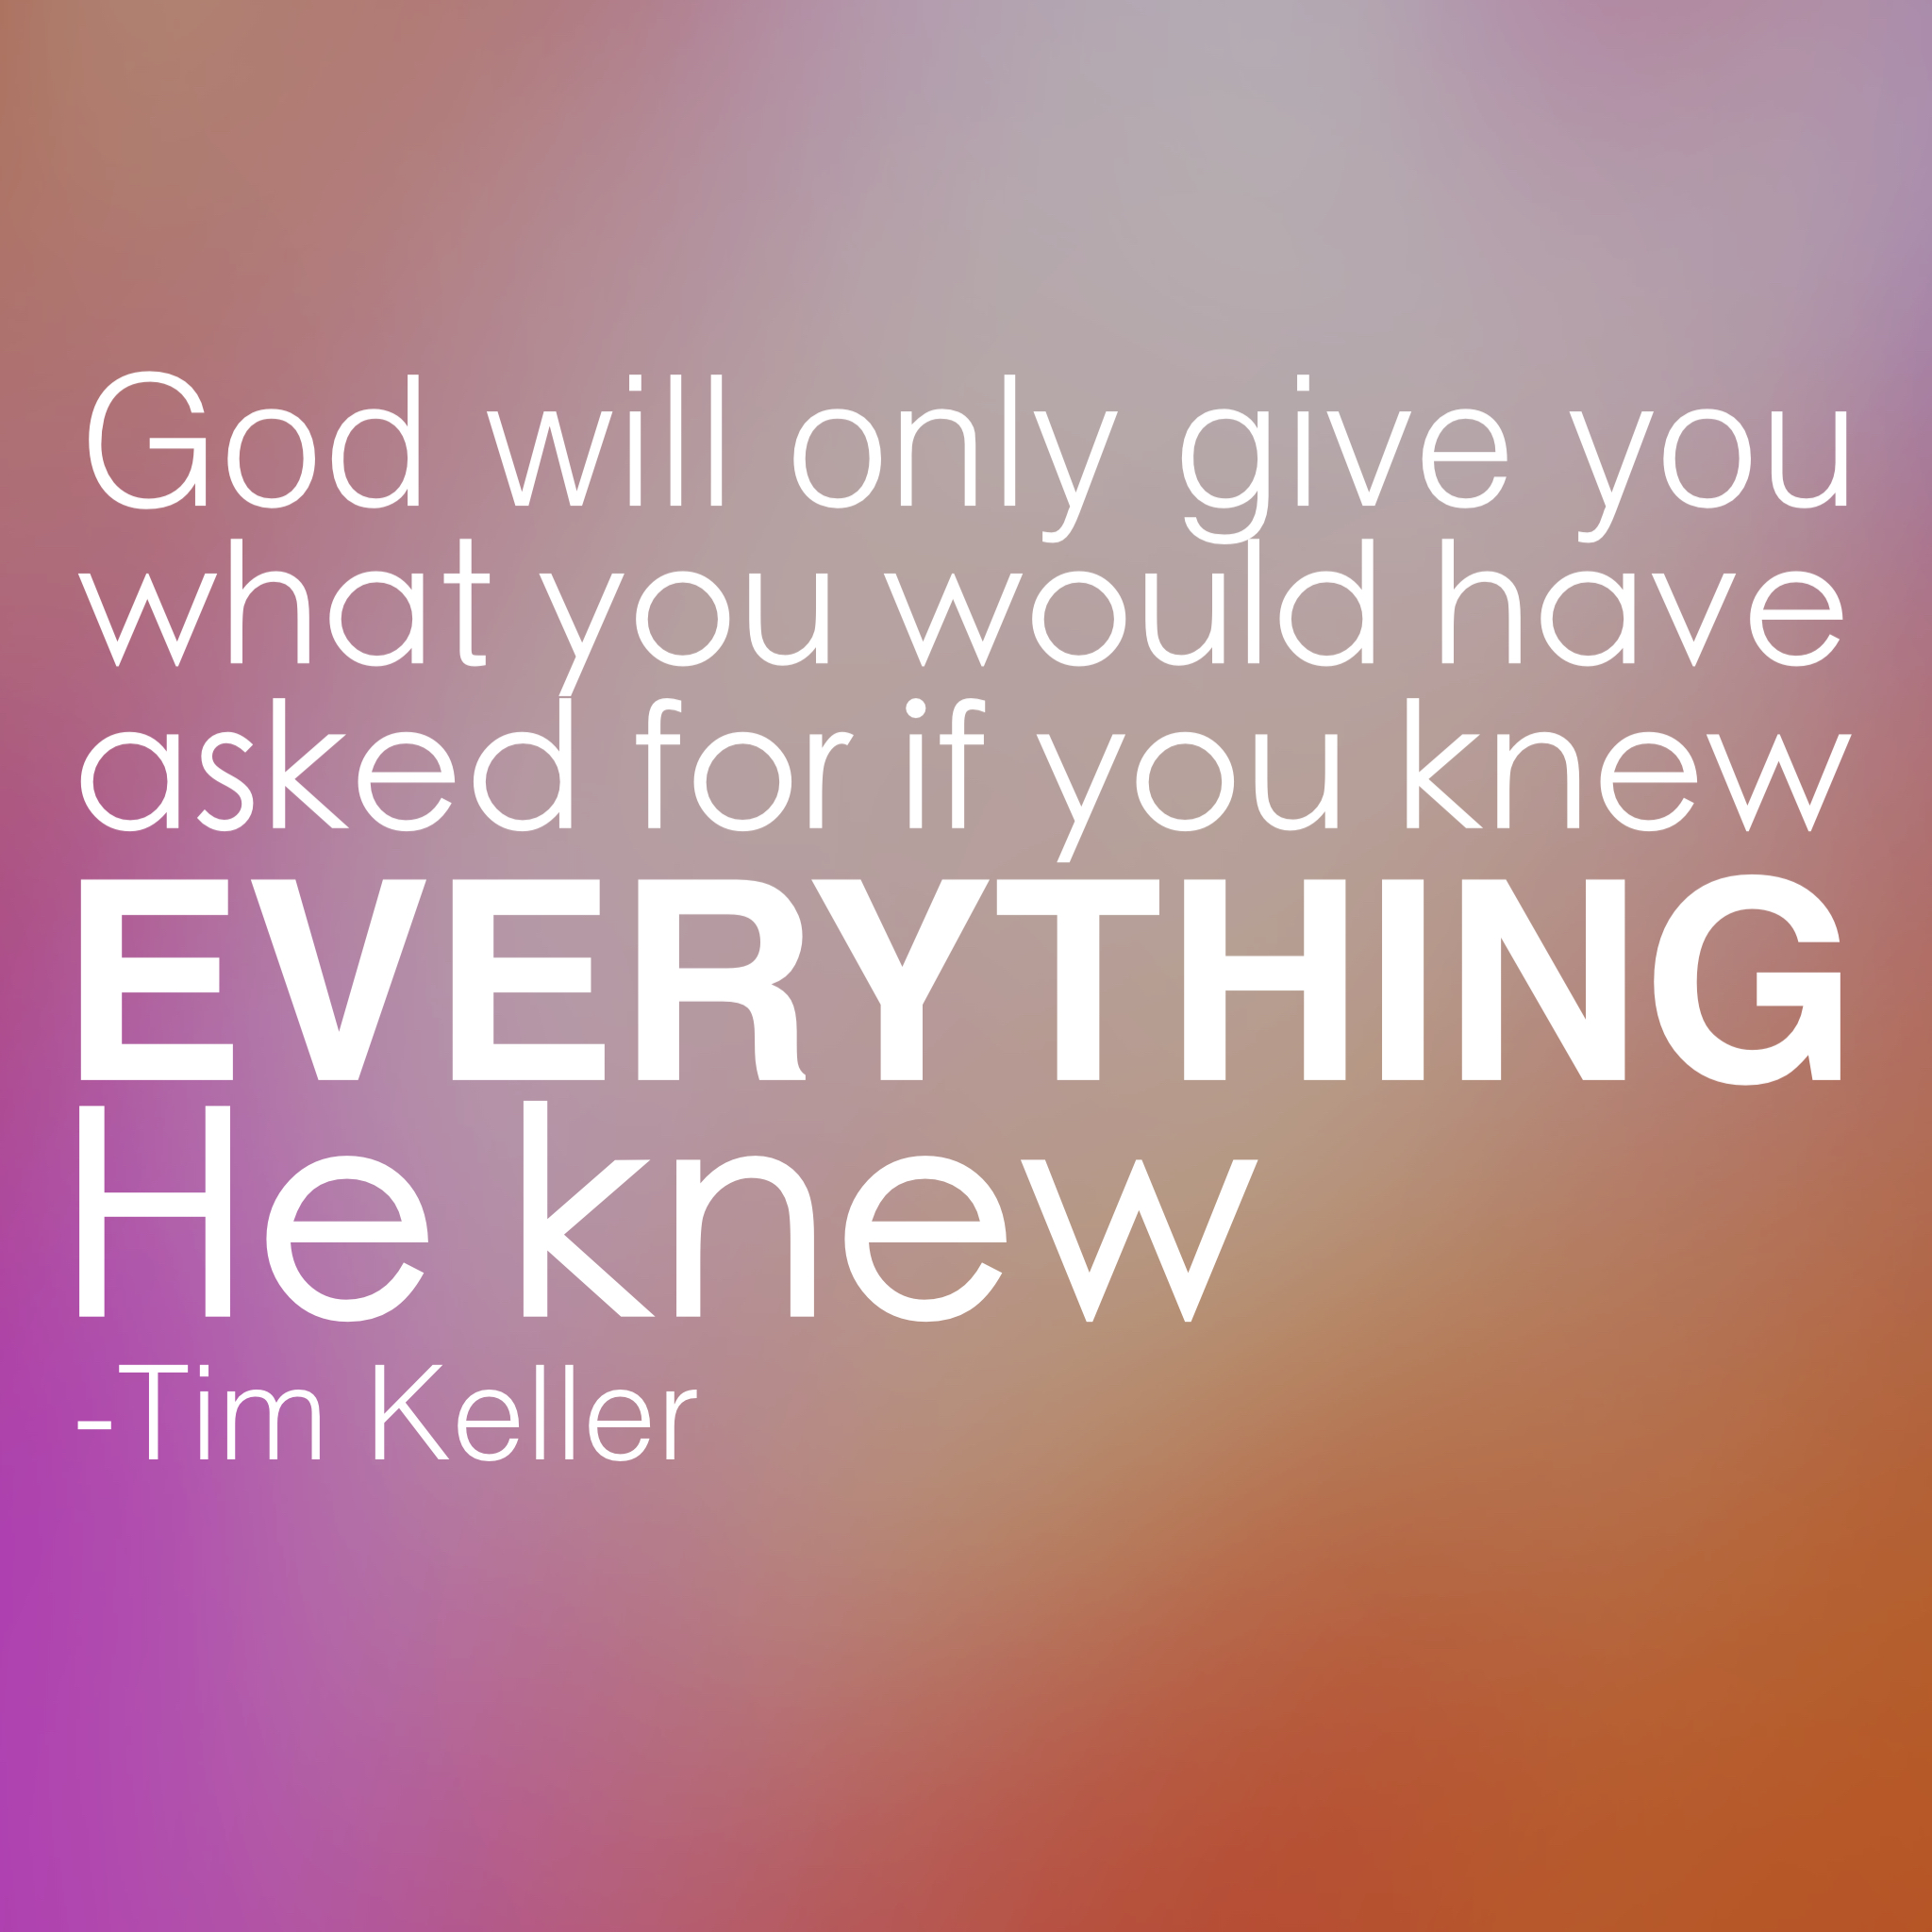 """God will only give you what you would have asked for if you knew everything He knew."" -Tim Keller Inspire your heart to prayer. www.chereehayes.com"